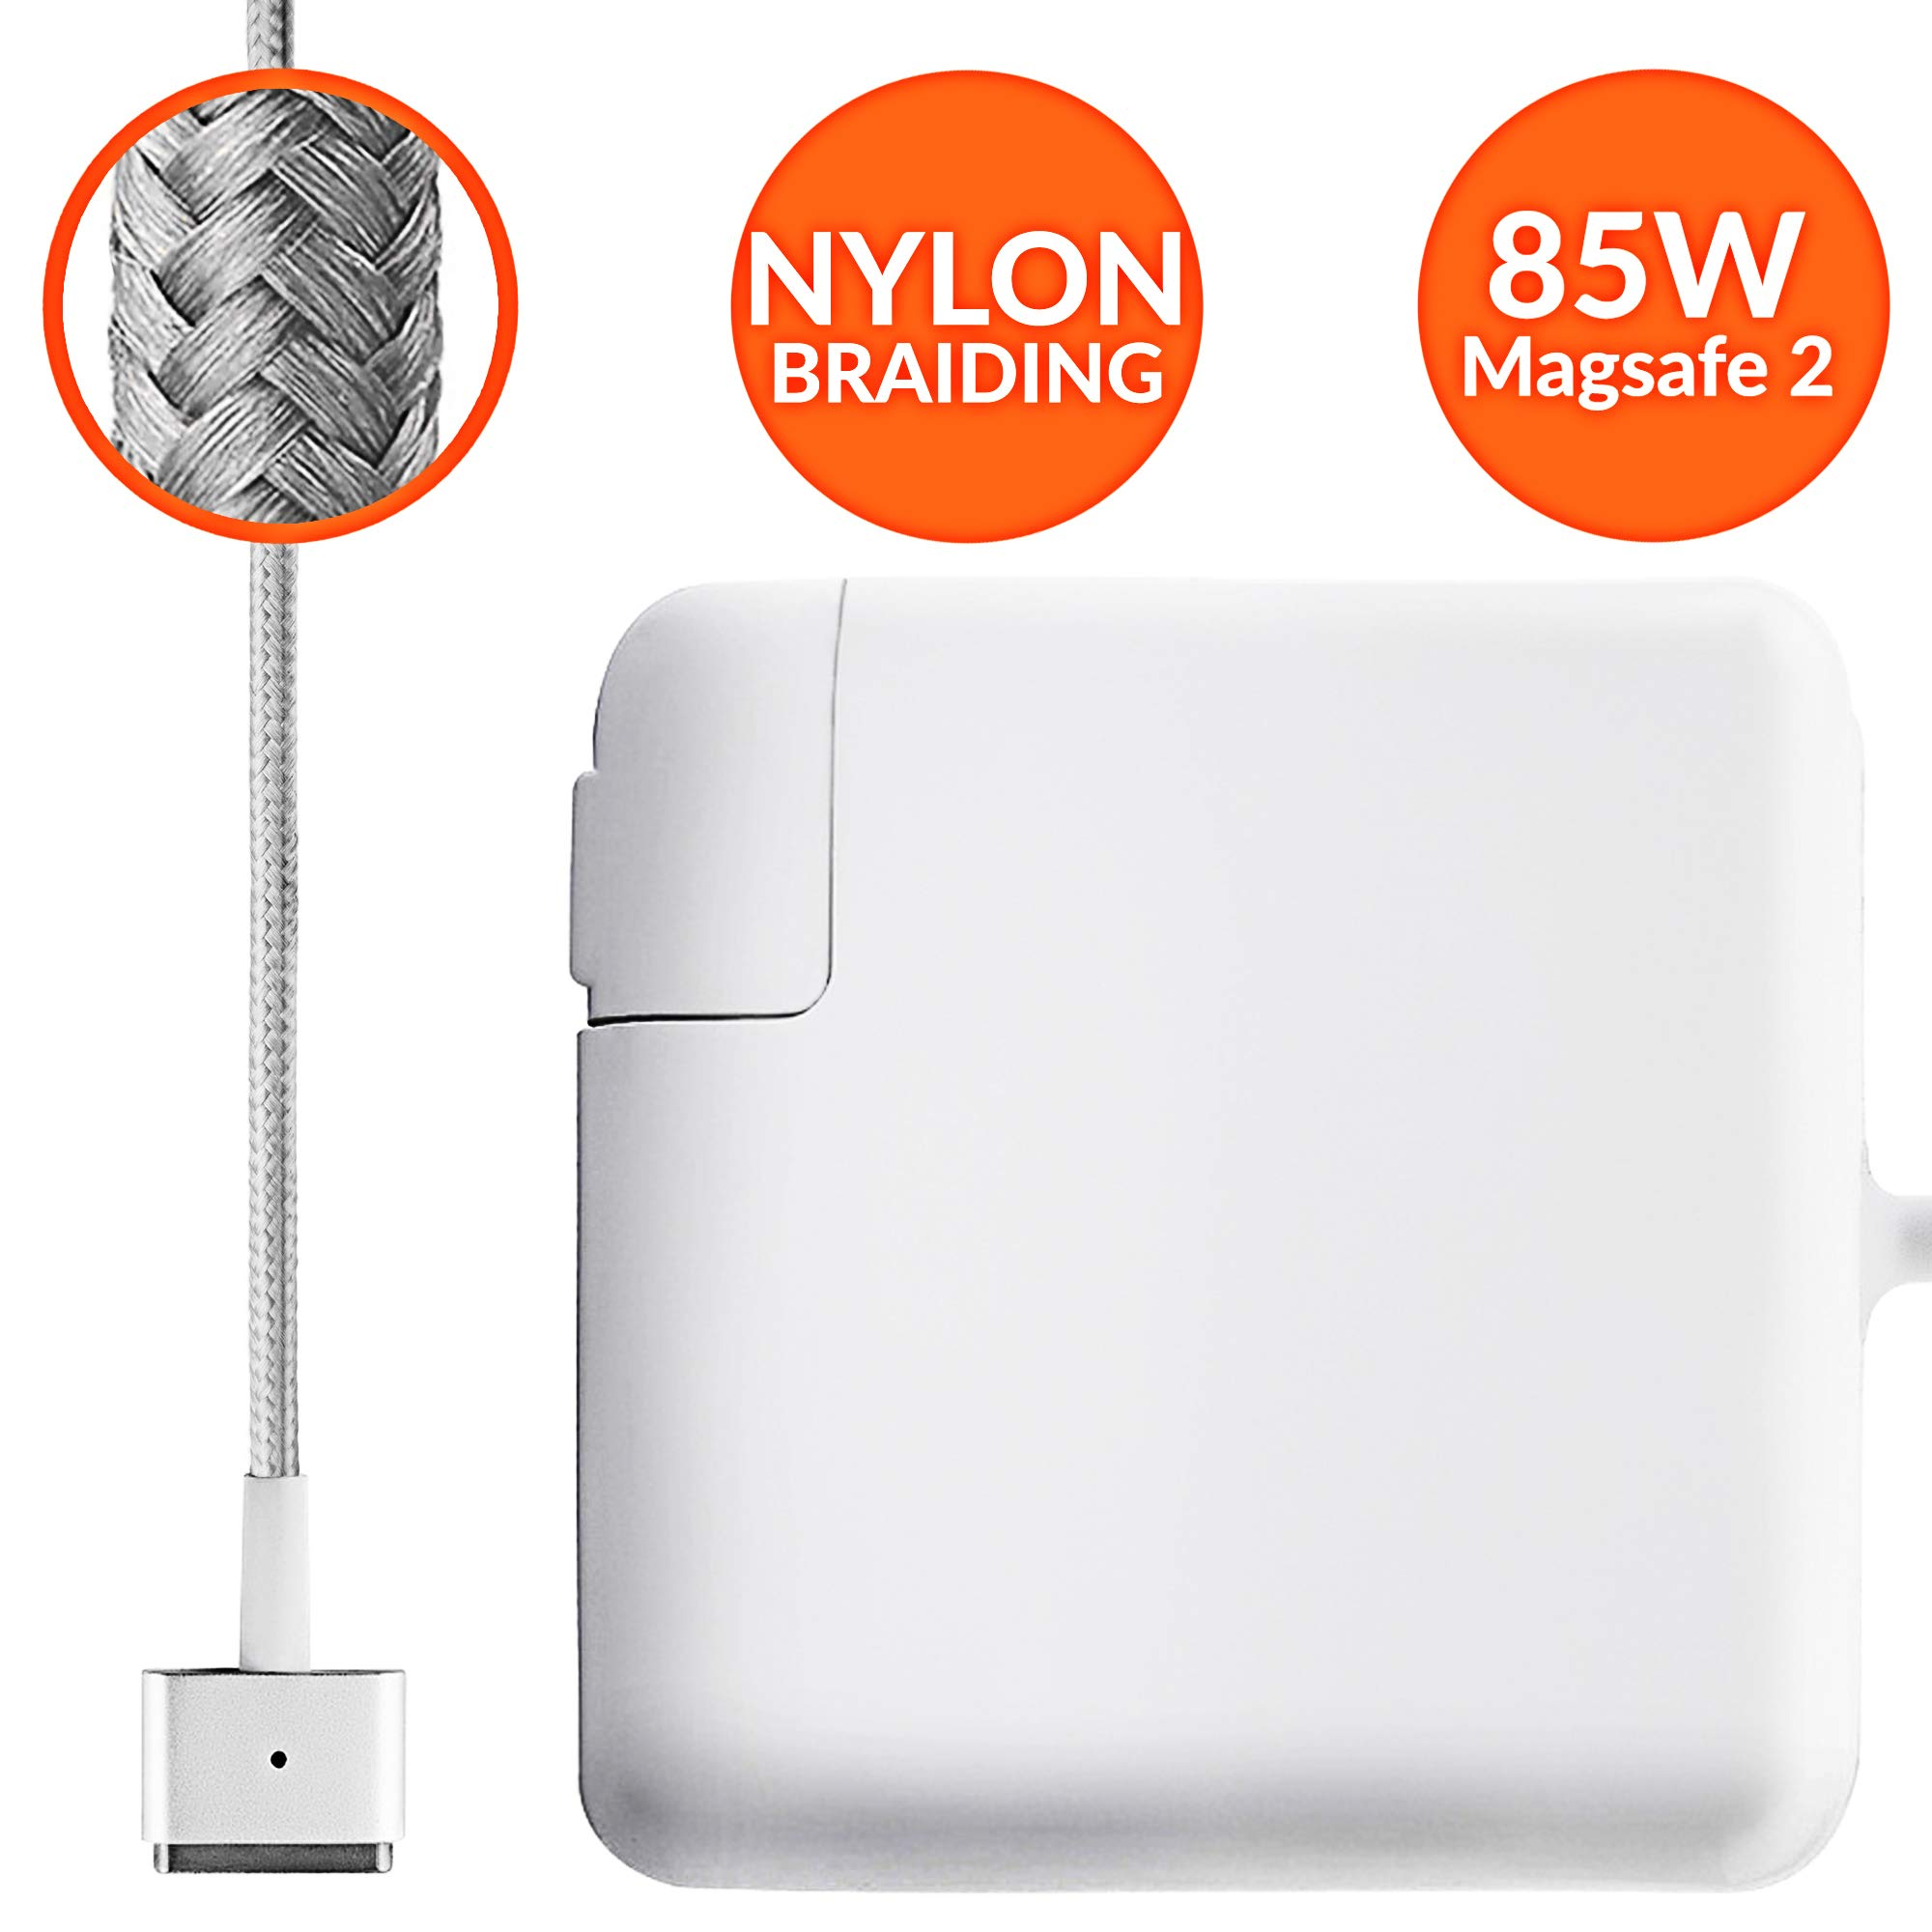 Mac Book Pro Charger Tangle-Free Nylon Cable Replacement Charger for Apple MacBook Pro Laptops with 85w Magsafe 2 Power Adapter